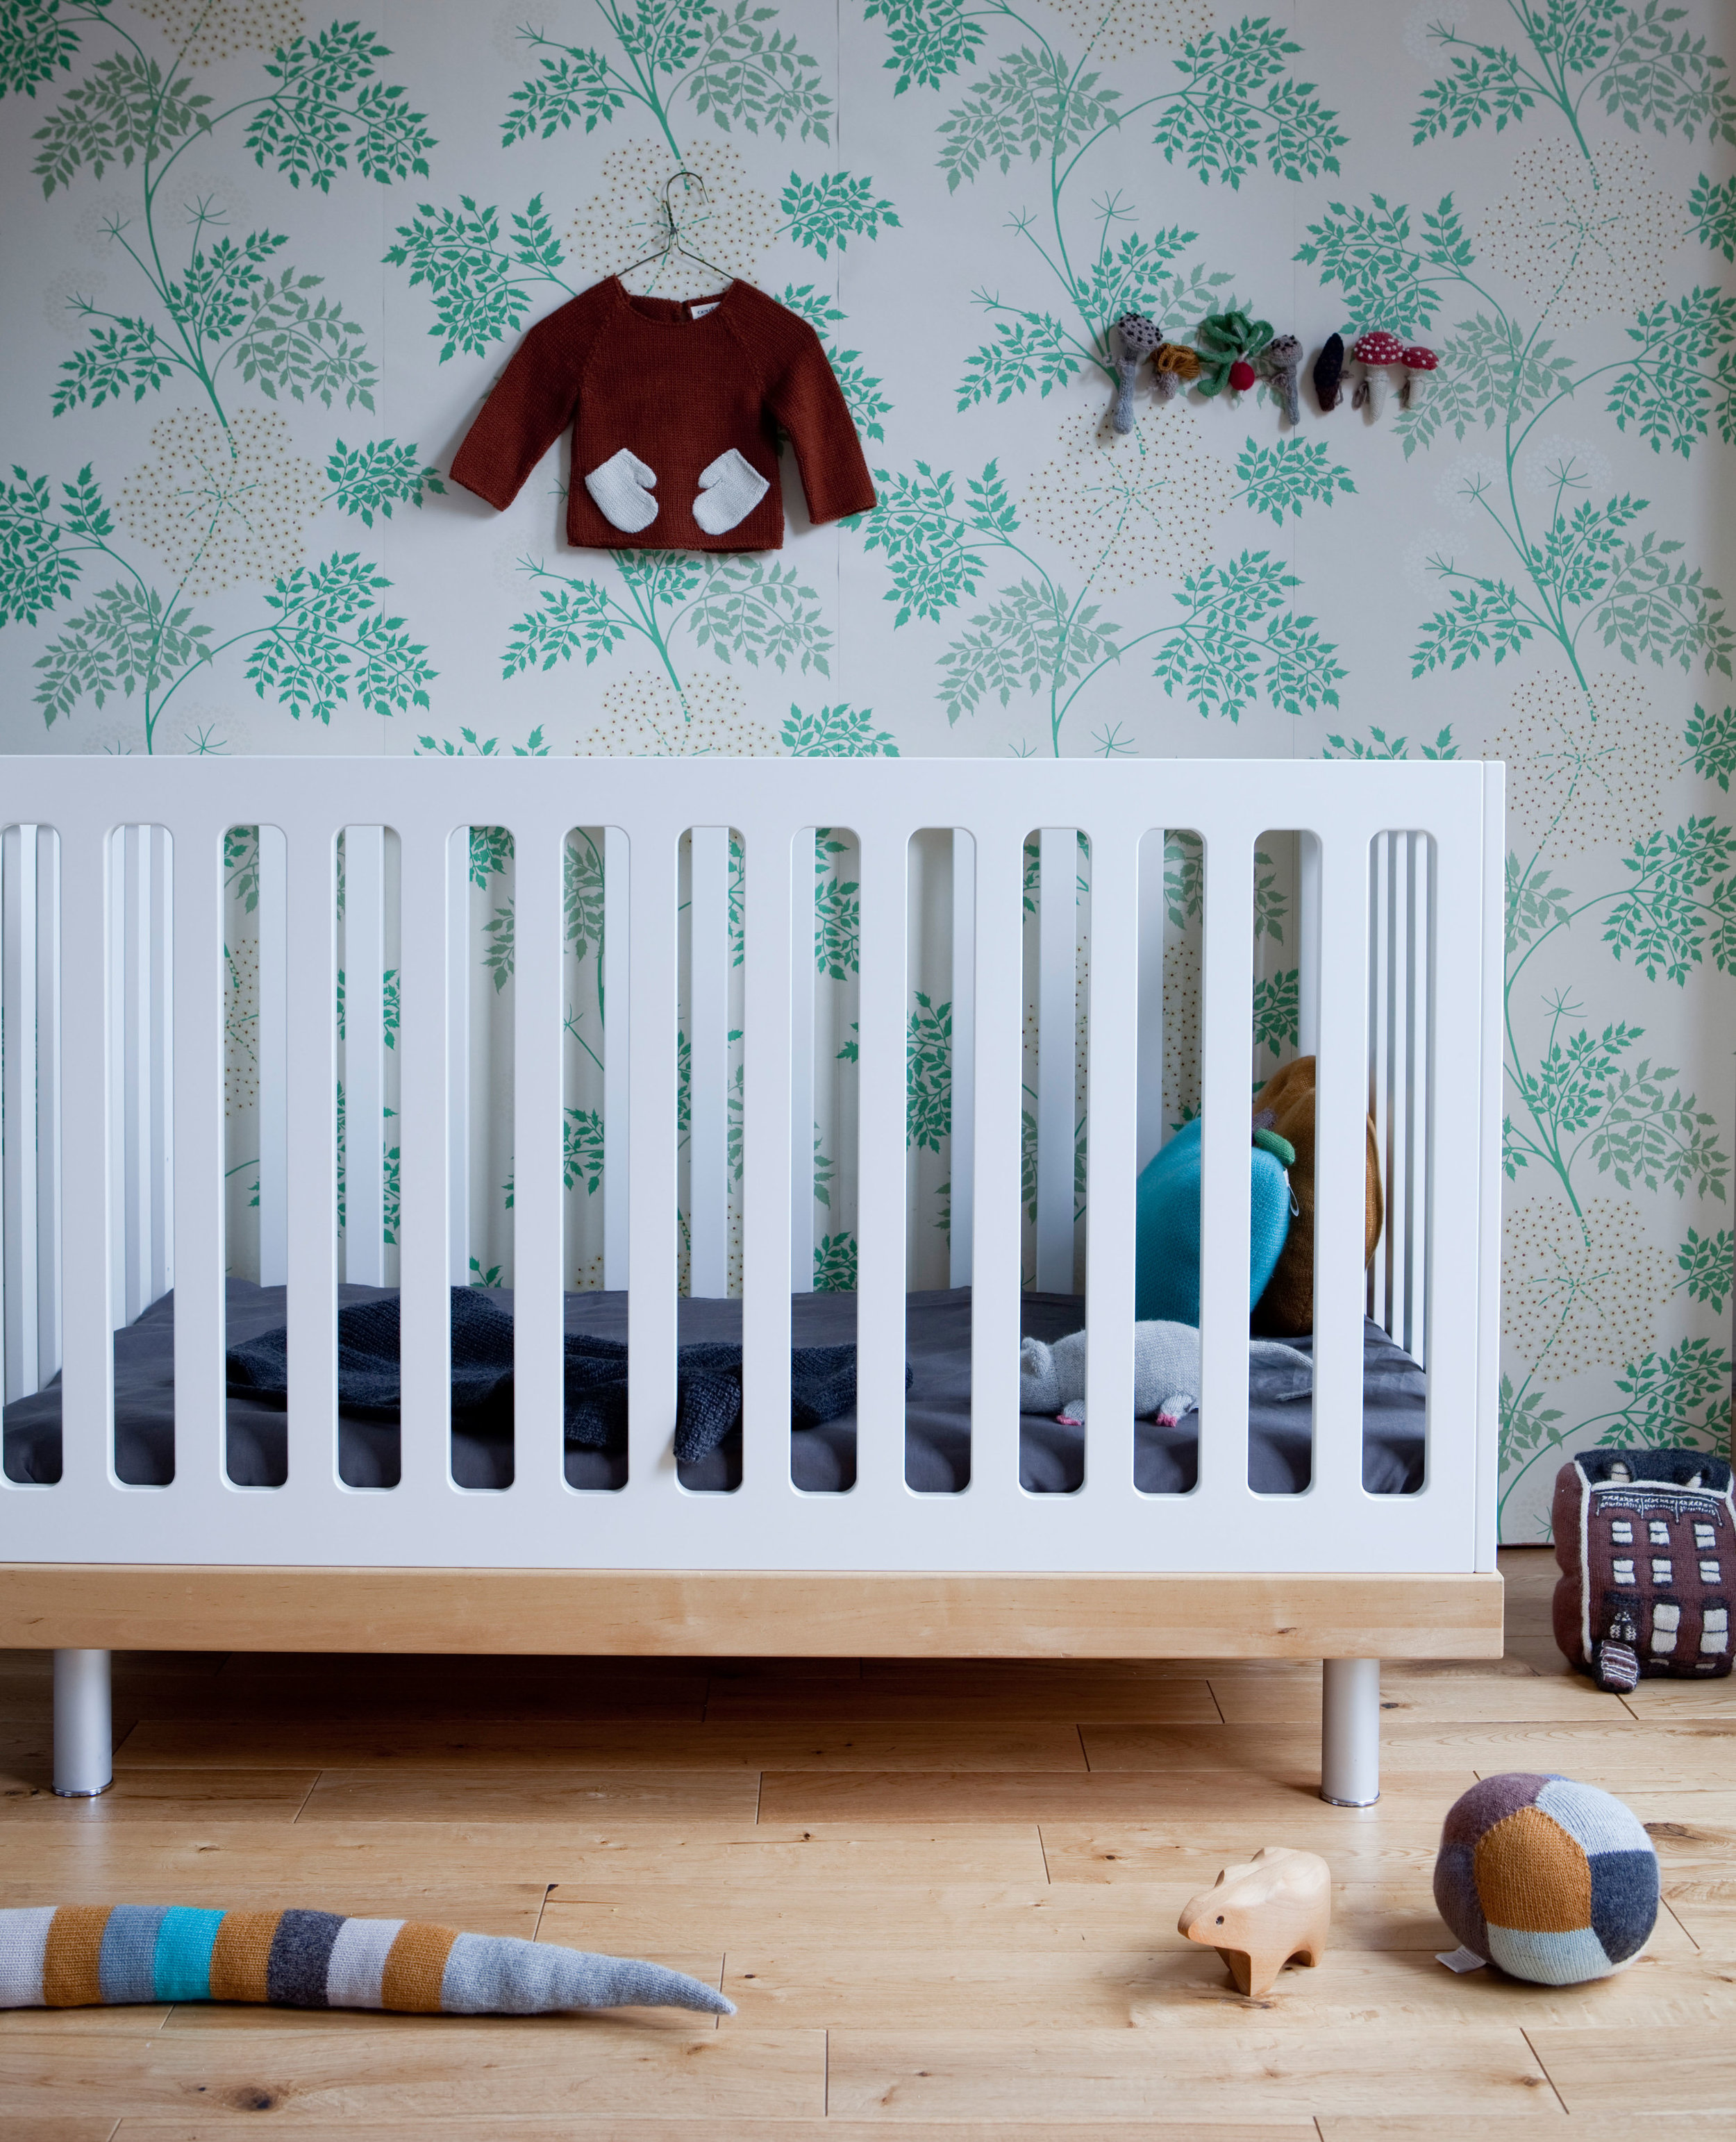 From birth to 5 years, the Classic Cot Bed from Oeuf NYC pairs modern design with practical features. Complete with fixed sides and made from solid birch wood and eco-MDF, the strong and durable bed frame has been designed to better utilise your space. With a smaller footprint than typical cots and a low overall height for easier access to your little one, the classic cot bed is a practical choice for new parents. With 3 adjustable mattress positions, simply lower the mattress height to ensure your little escape artist is kept safe while they sleep. And when they're not so small anymore, convert your cot into an equally stylish 4-sided toddler bed with the conversion kit available separately - making the transition from baby bed to toddler bed a lot less daunting. Quick and easy to assemble and convert, your nursery will be ready in no time! Choose from 2 gorgeous finishes; White and Birch or White and Walnut and pair with matching accessories and bedding to create a soothing space for your new arrival.     Features and Benefits: Nursery cot bed in white and birch finish Made of solid birch and eco-MDF Cot can convert to a 4-sided toddler bed with conversion kit (sold separately) Suitable from 0-5years Easy to assemble by one person 3 adjustable mattress positions Low overall height for easy access Small footprint helps utilise space efficiently Adjustable legs for uneven surfaces.